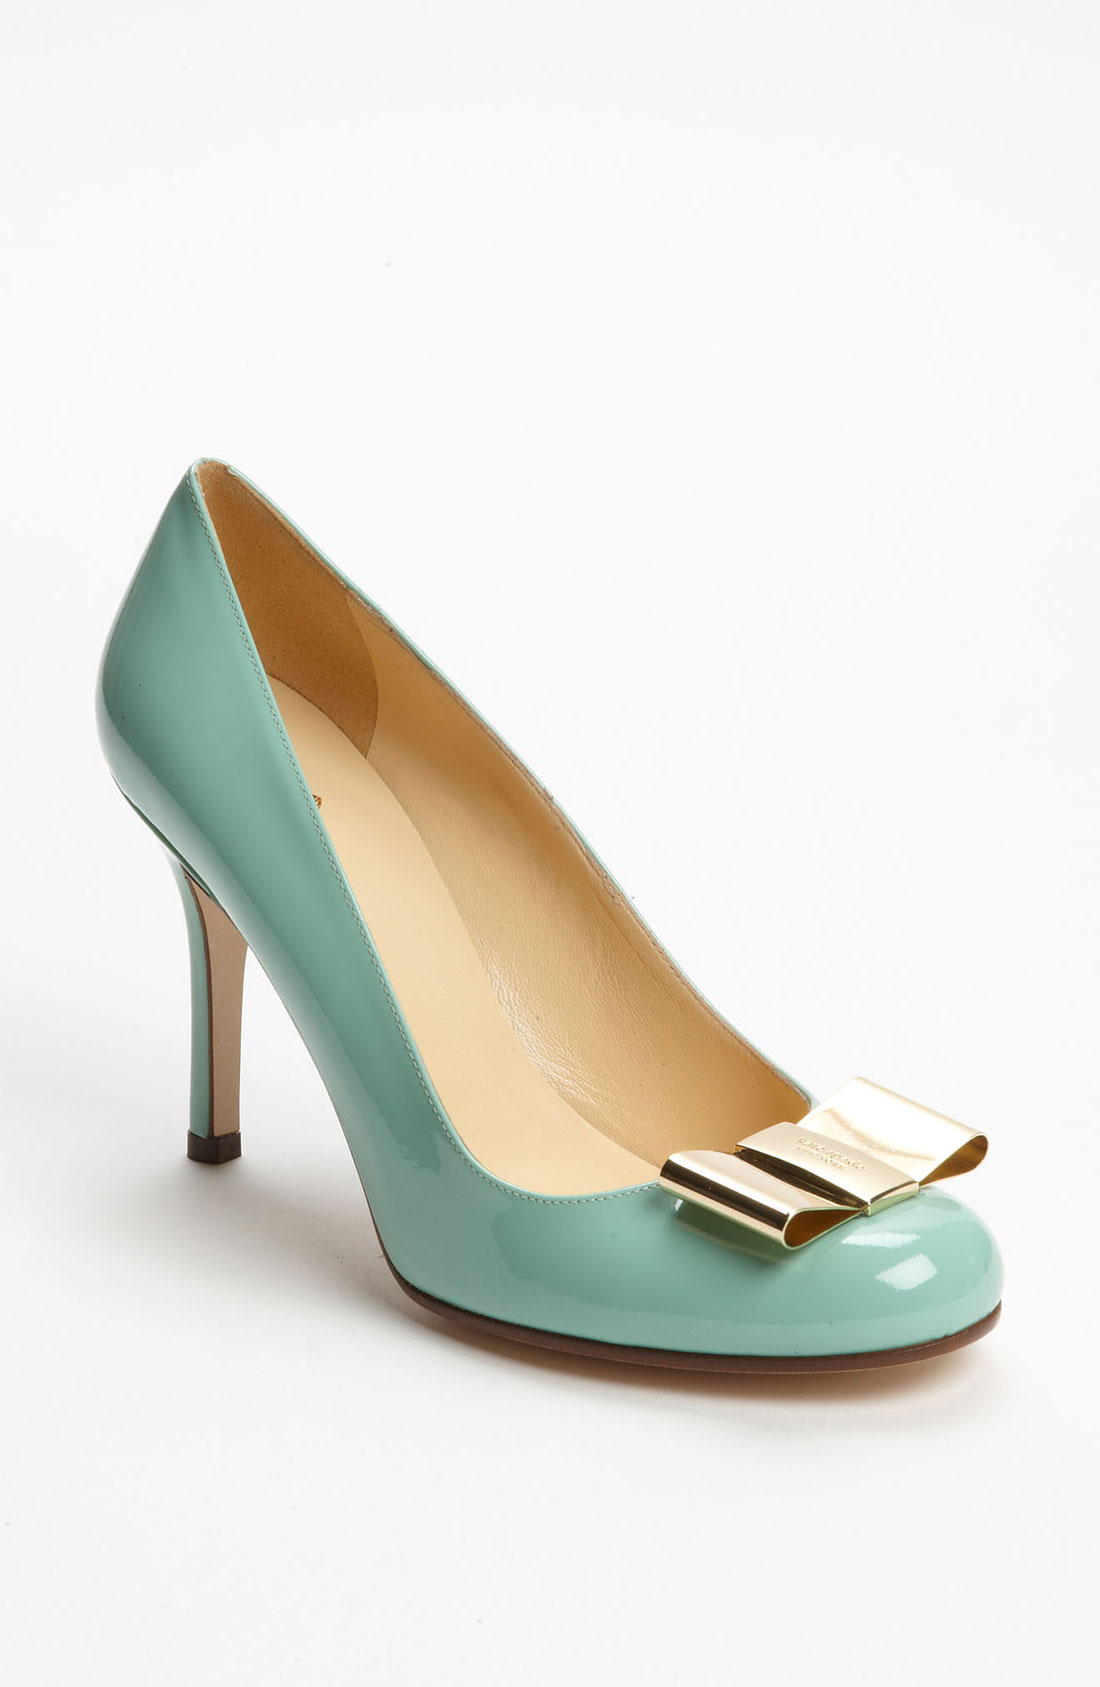 bb6cc629641 Karolina pumps with bow front by Kate Spade New York